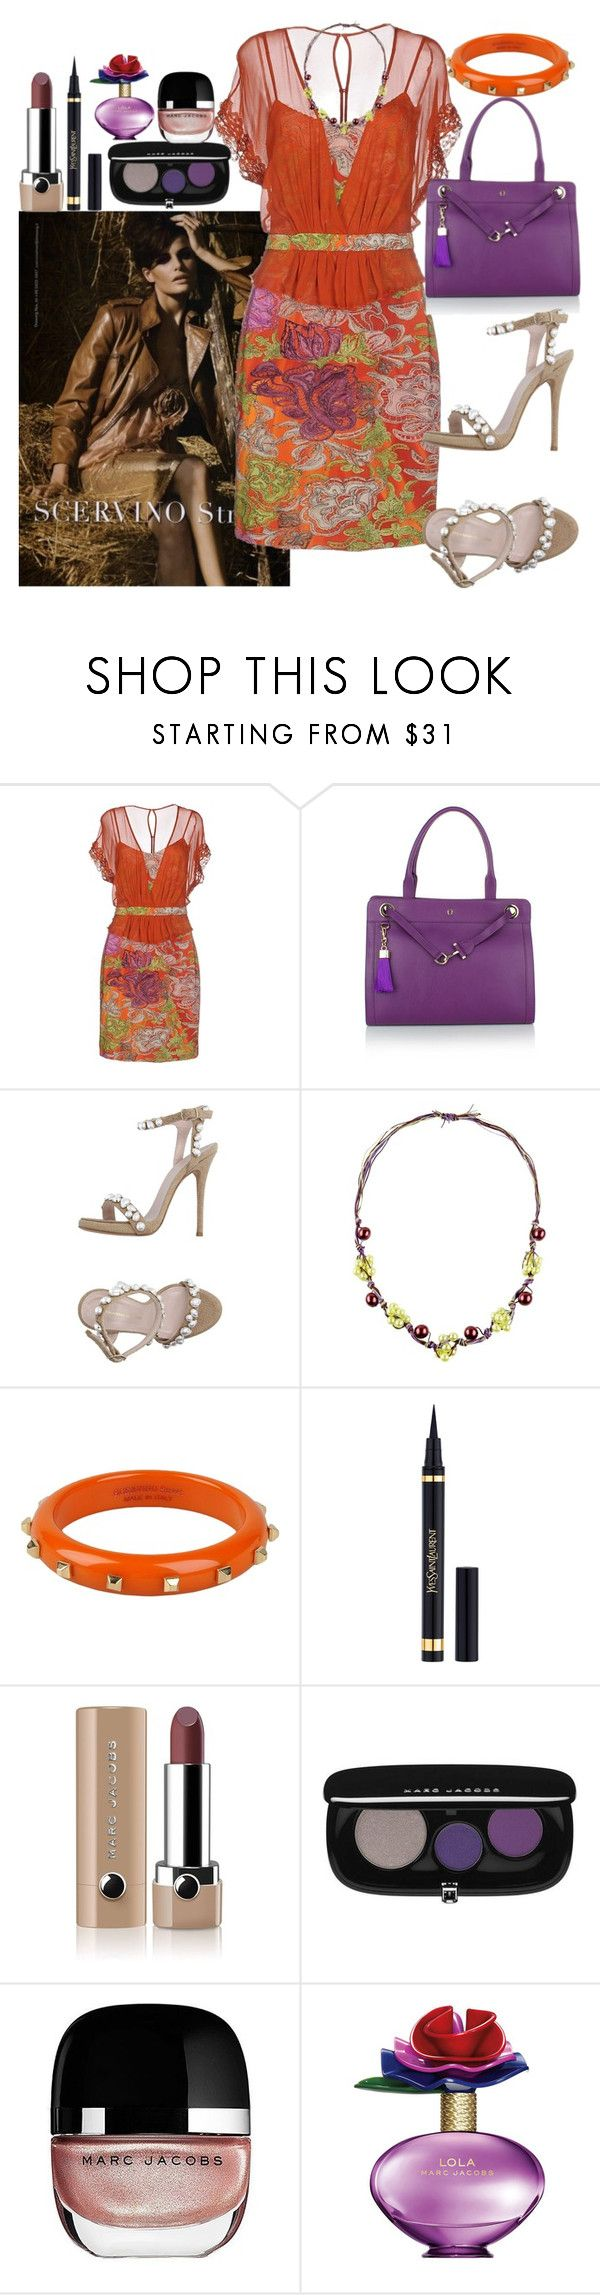 """""""Scervino Street"""" by denibrad ❤ liked on Polyvore featuring SCERVINO STREET, Etienne Aigner, Ermanno Scervino and Marc Jacobs"""